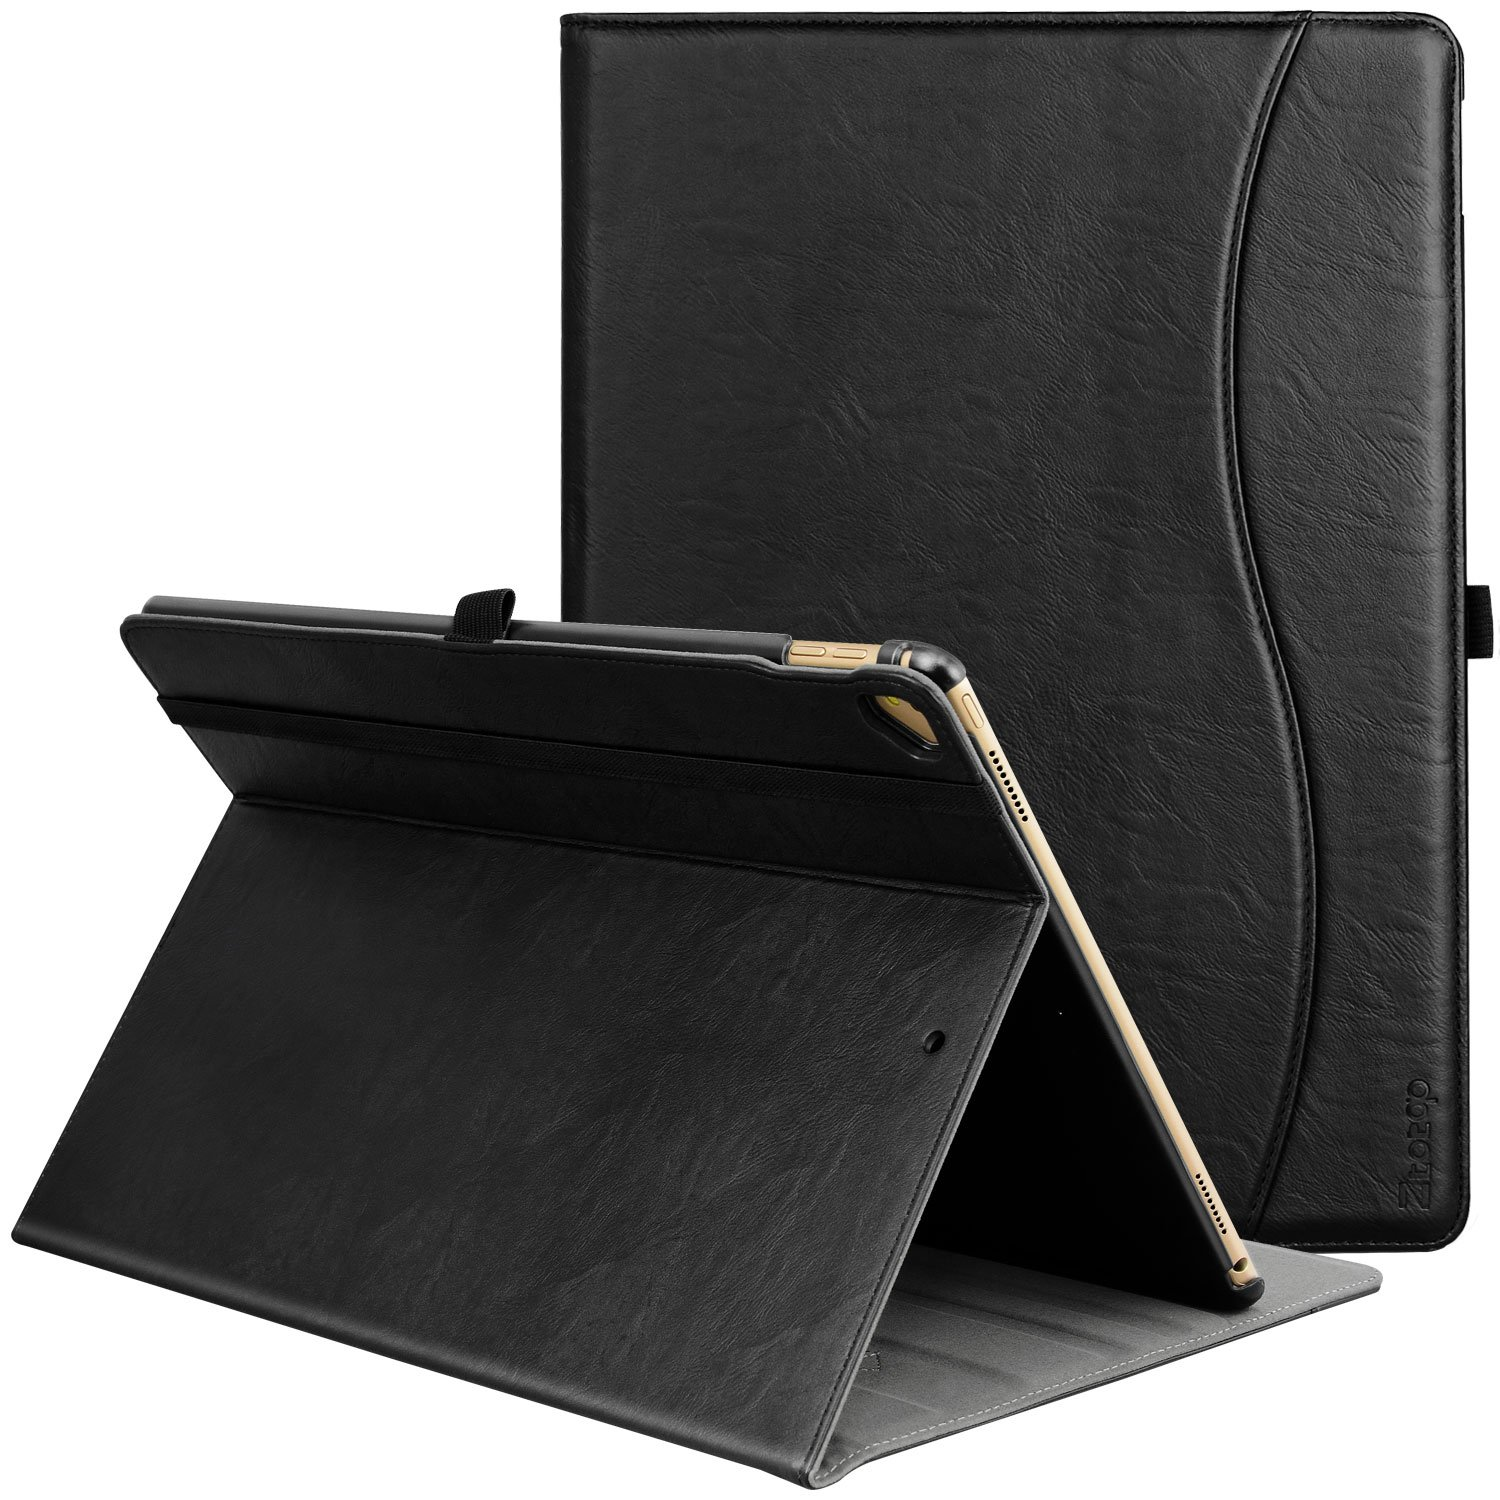 IPad Pro 12.9 Inch 2017/2015 Case, Ztotop Premium Leather Business Folding Stand Folio Cover for New Apple Tablet with Auto Wake/Sleep and Document Card Slots, Multiple Viewing Angles,ALL Black